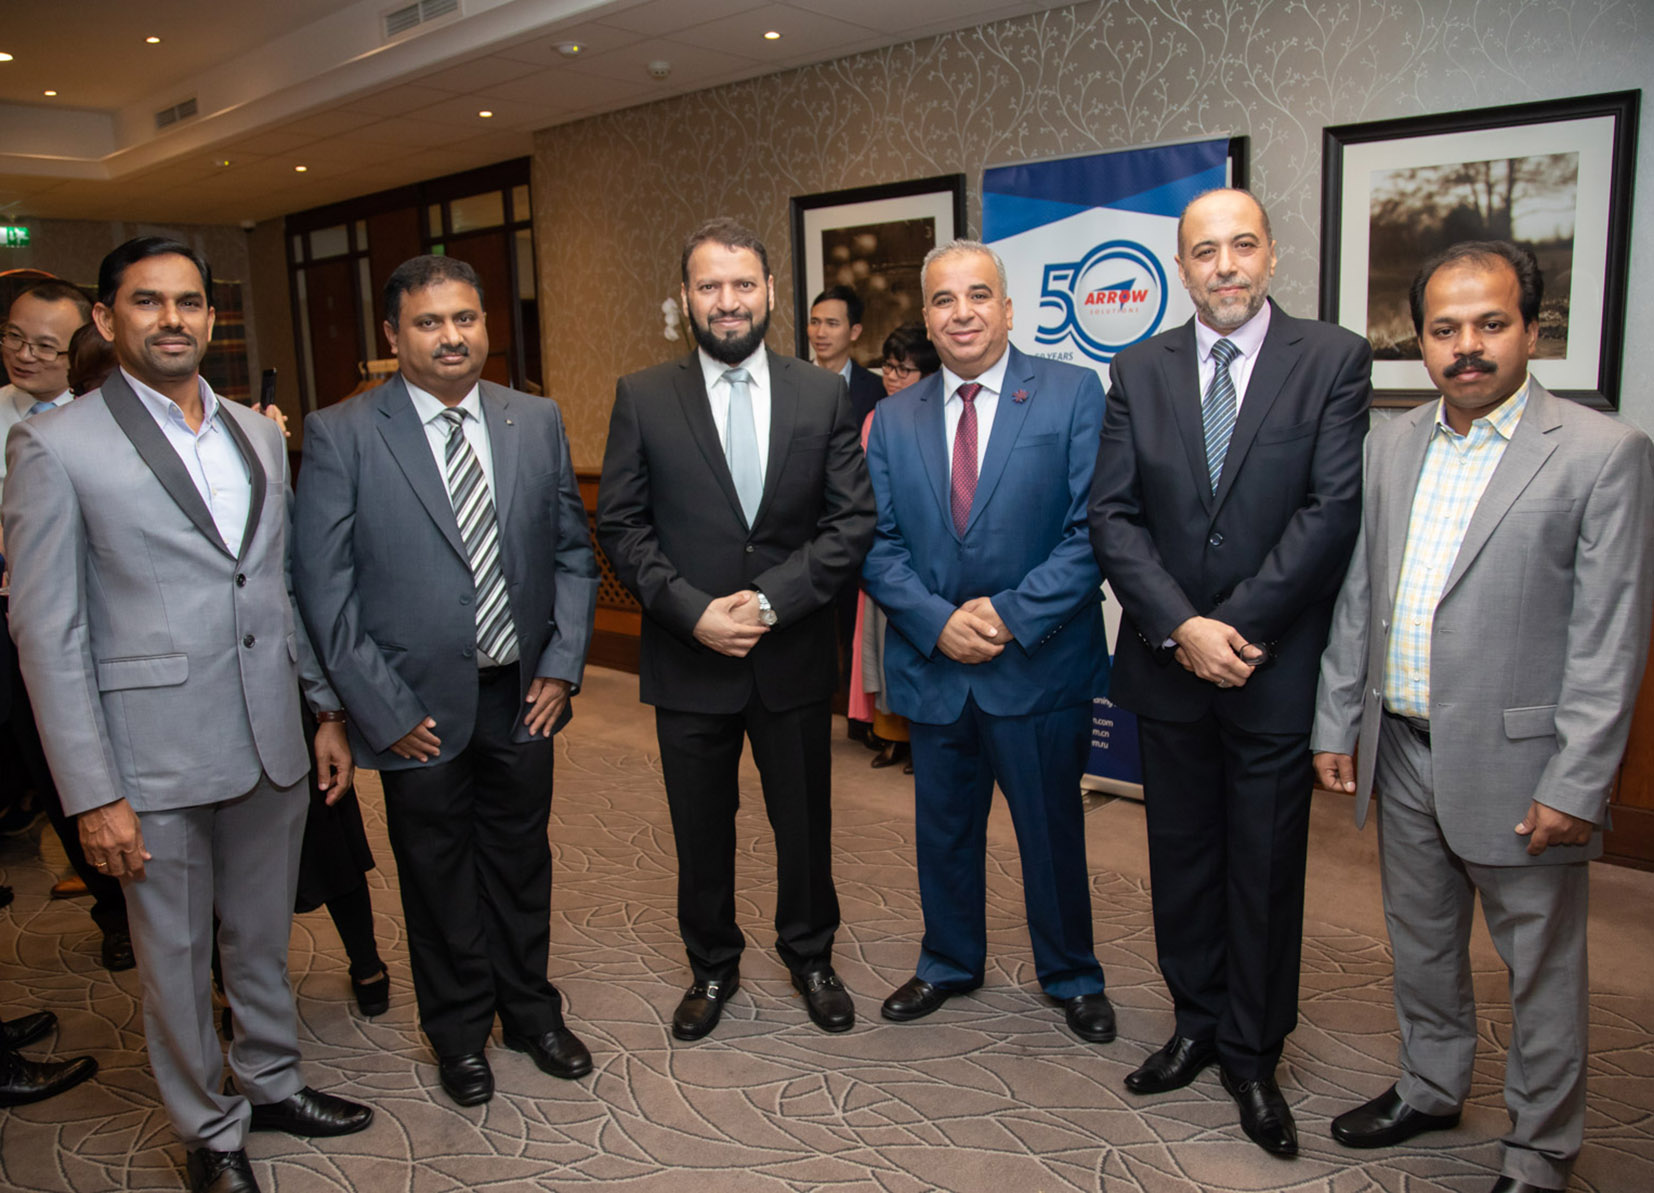 (l-r) N J Joseph (Daze Trading), T M Rajesh (Bitec), Sheikh Ibrahim Al Dossary (Al Shaikh Group), Hussein Al Eyadah (Powerclean), Mufti Al Noaimi (Arrow Solutions - Saudi Arabia) and Ameer Sulthan (Yanama) – some of Arrow's Middle Eastern partners.